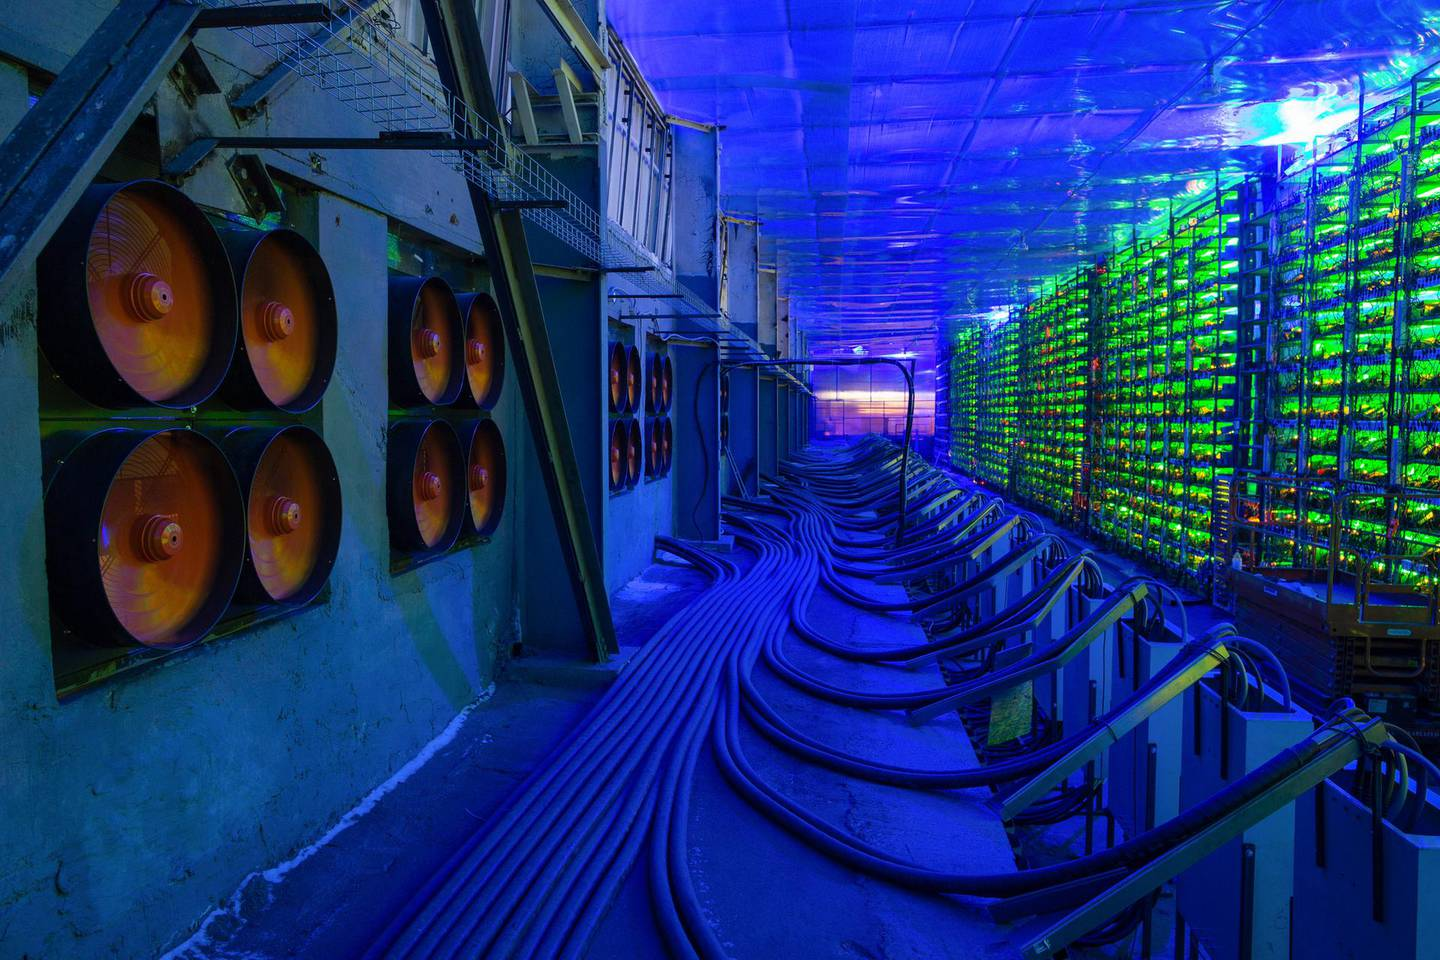 Industrial cooling fans operate to thermally regulate illuminated mining rigs at the CryptoUniverse cryptocurrency mining farm in Nadvoitsy, Russia, on Thursday, March 18, 2021. The rise of Bitcoin and other cryptocurrencies has prompted the greatest push yet among central banks to develop theirown digital currencies. Photographer: Andrey Rudakov/Bloomberg